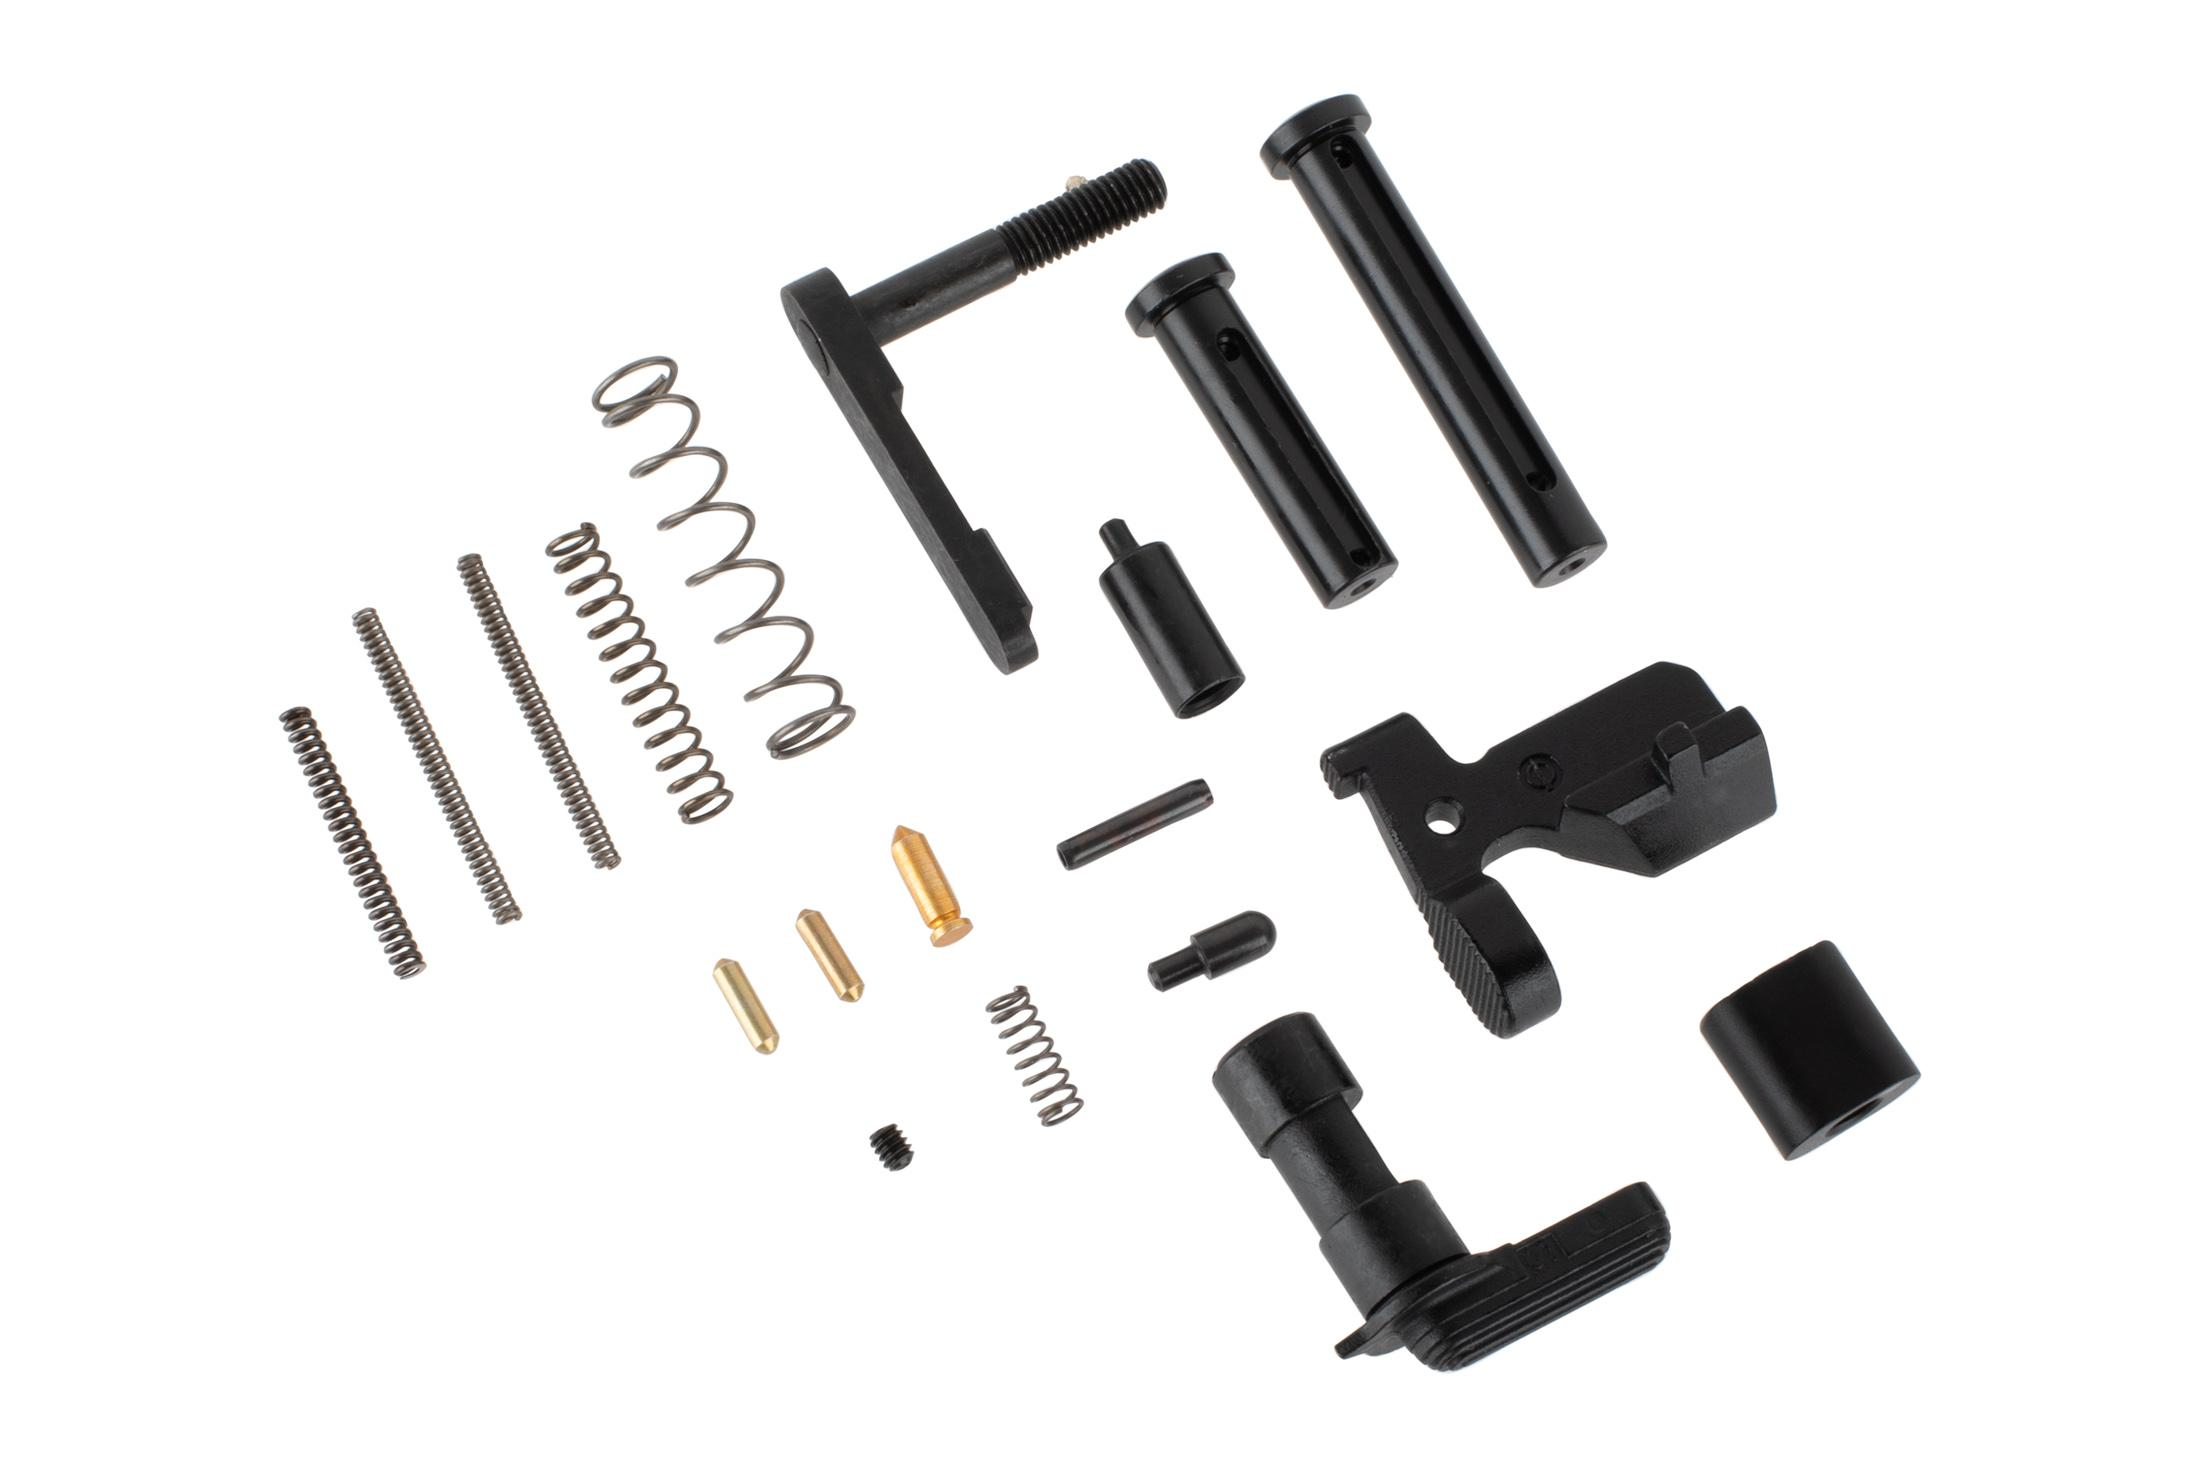 Aero Precision M5 lower parts kit without trigger group, pistol grip, or trigger guard